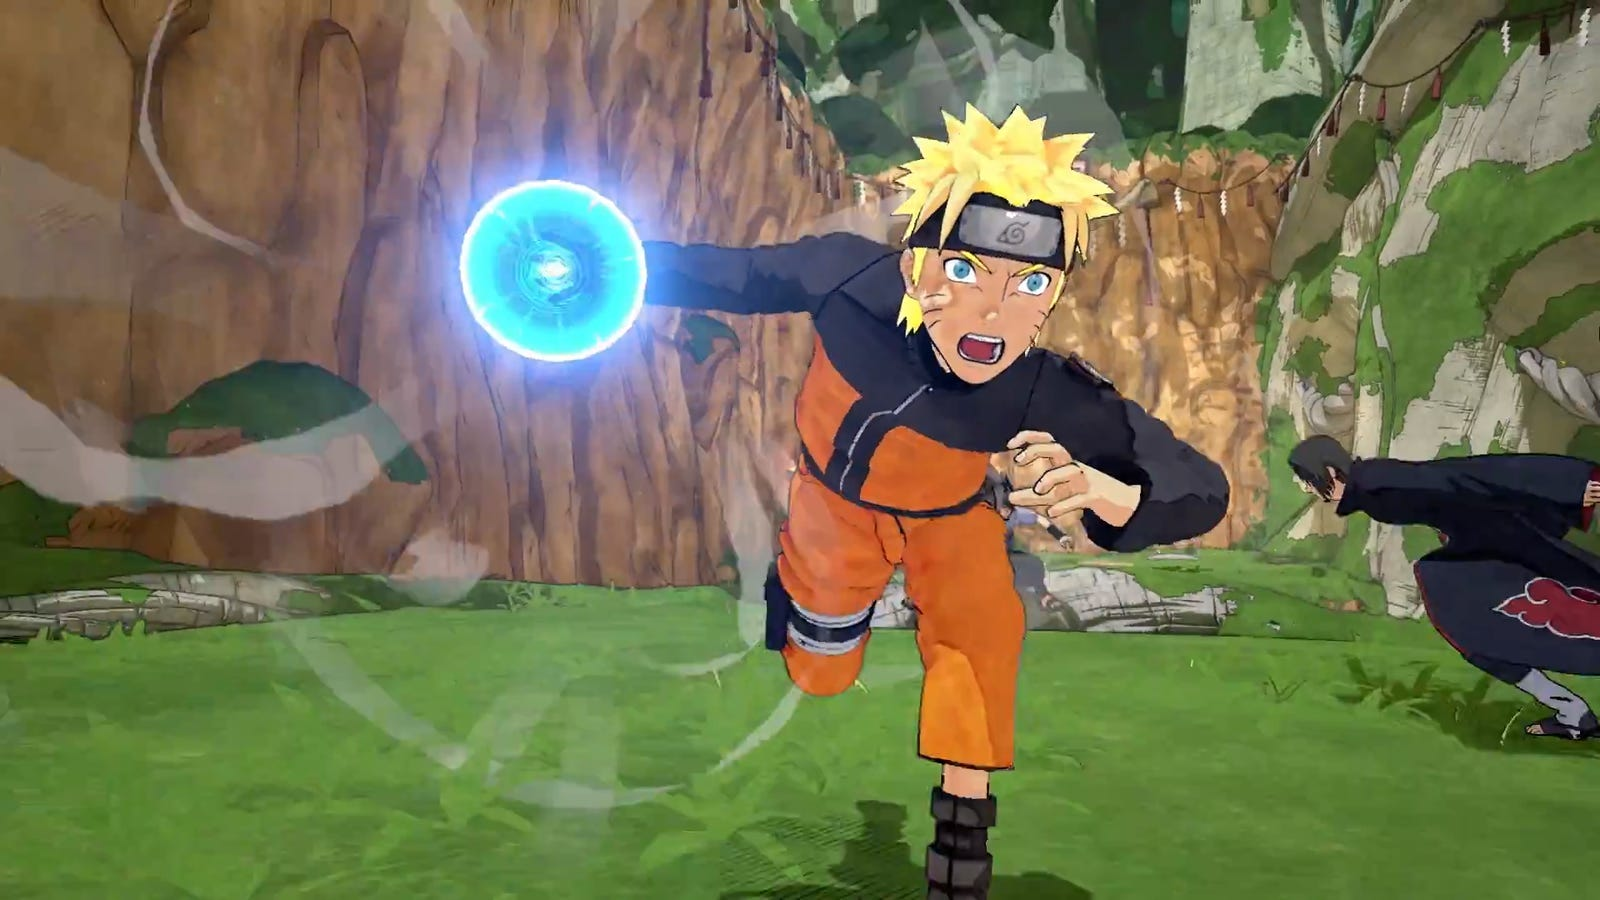 The New Naruto Game Is All About Class-Based Online Ninja ...